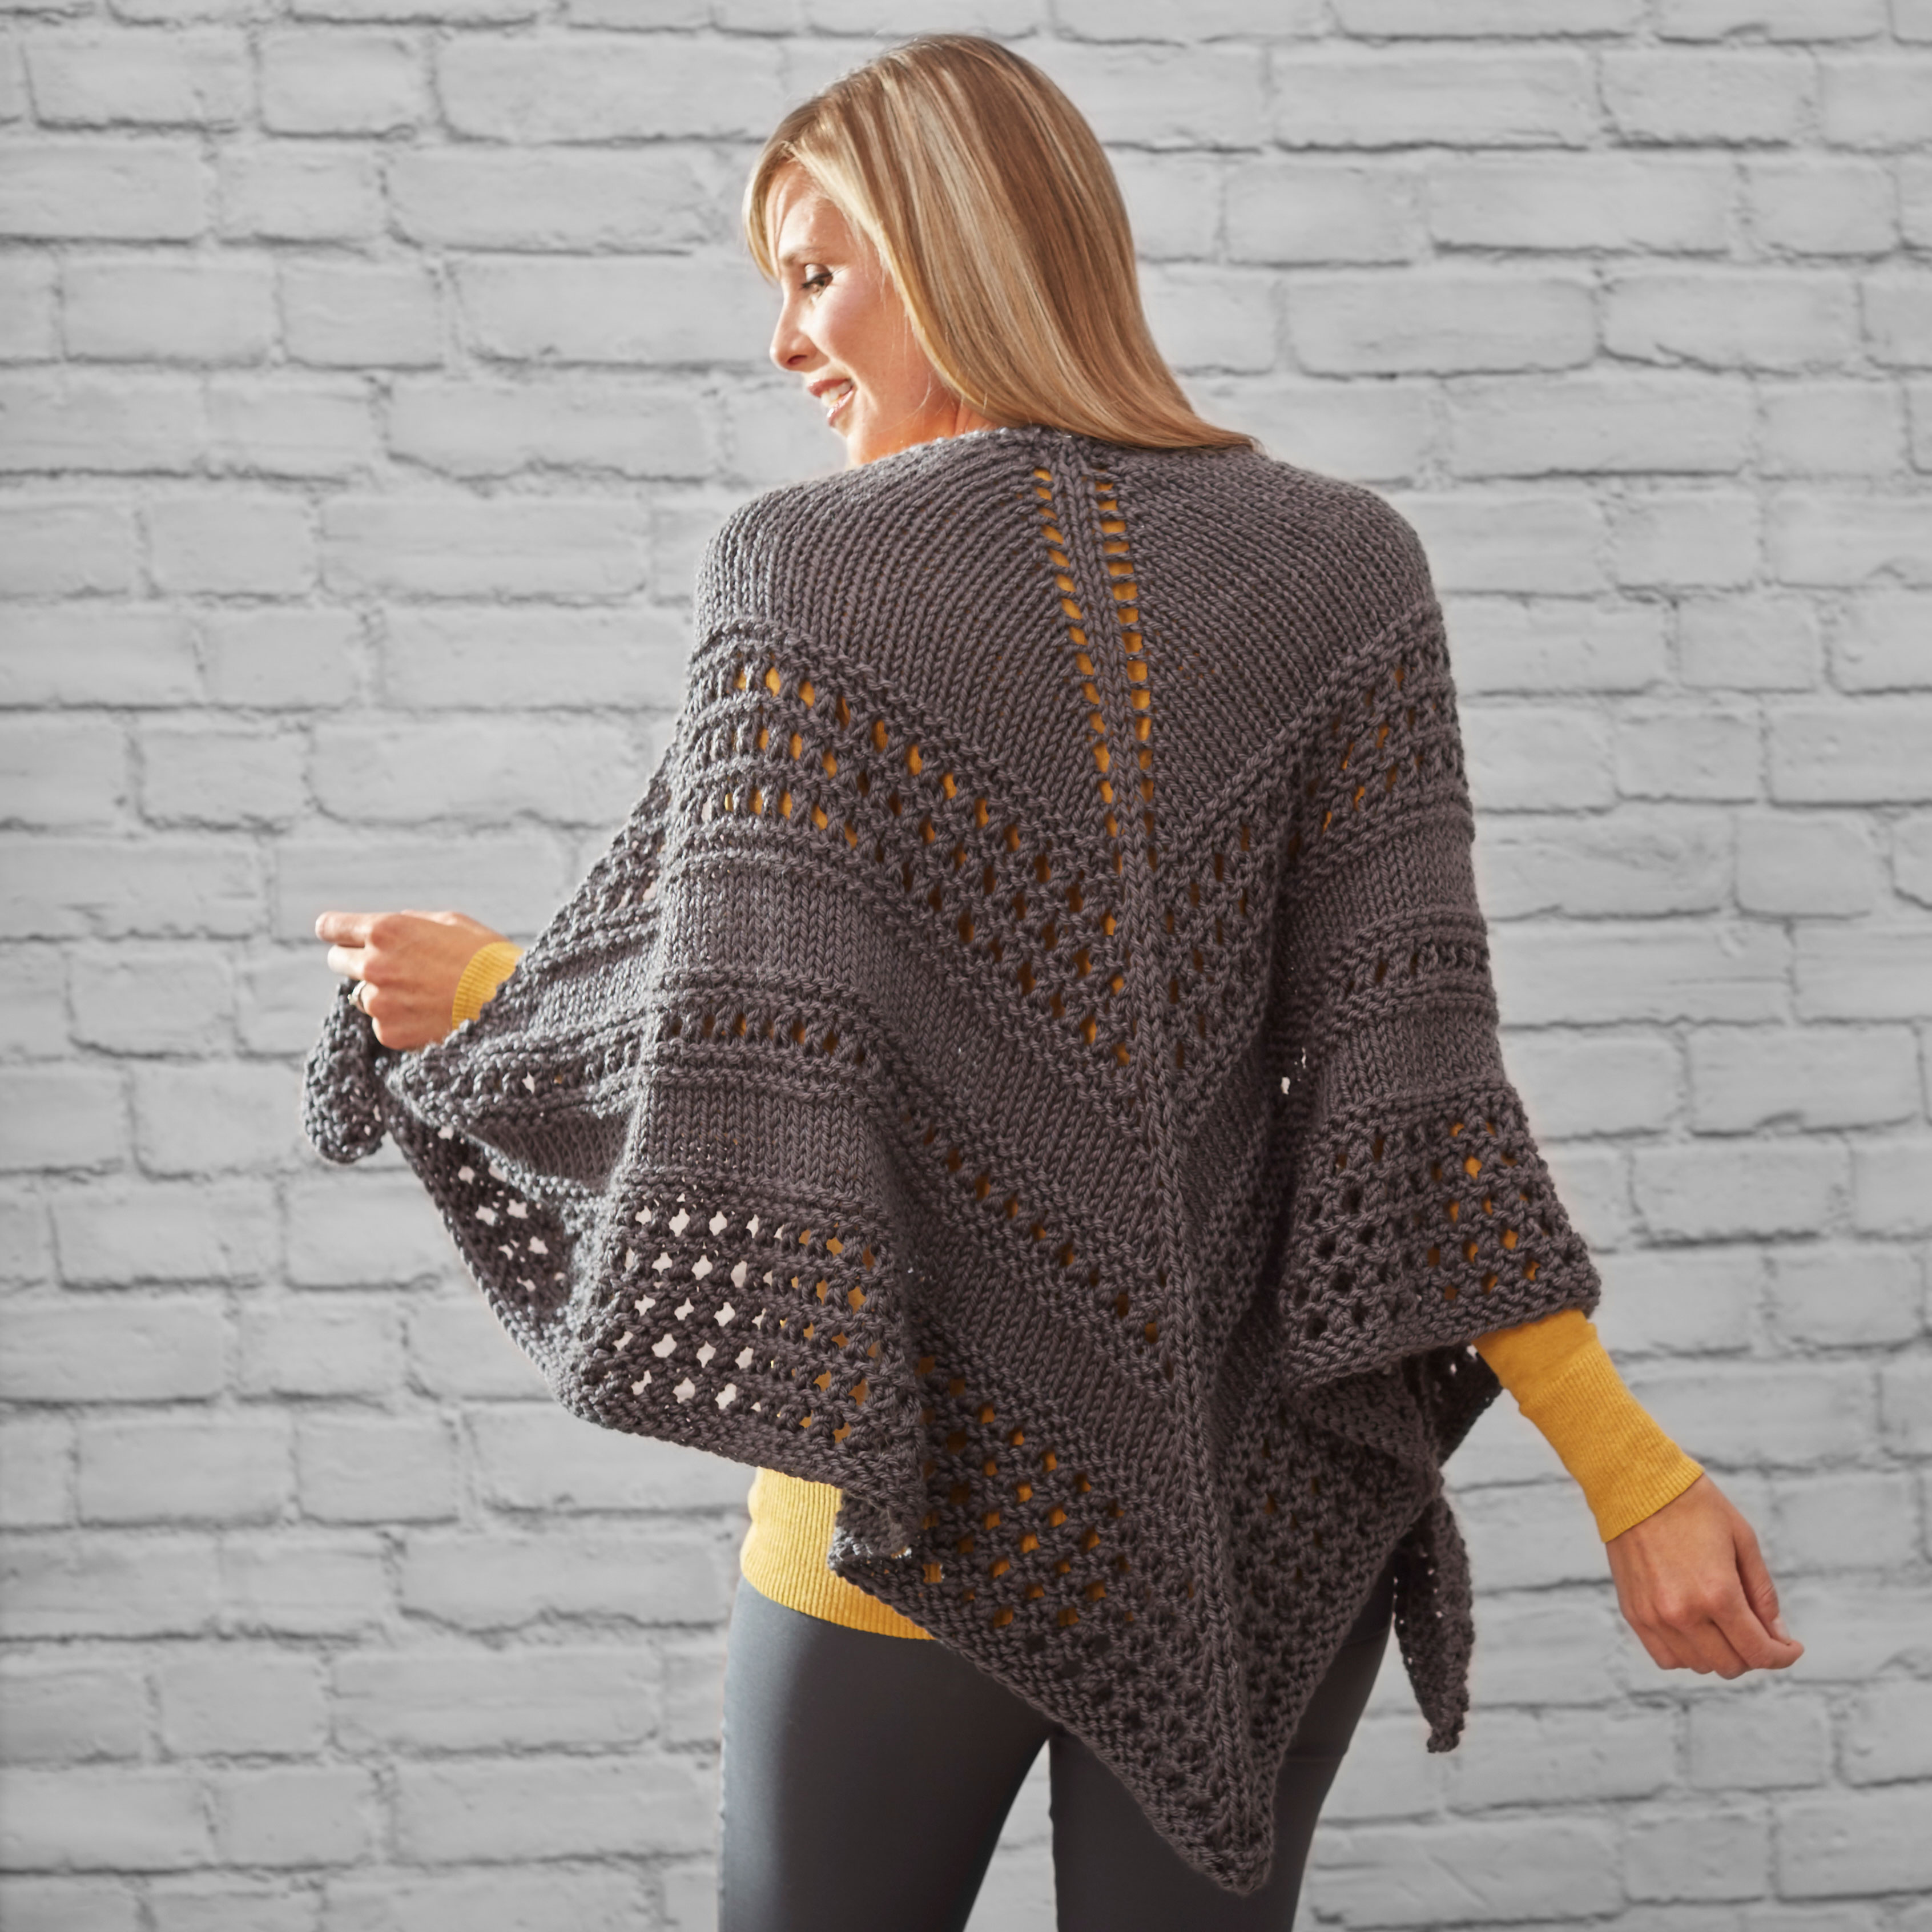 Knitting Events 2018 : Red heart soft essentials™ textured triangle knit shawl